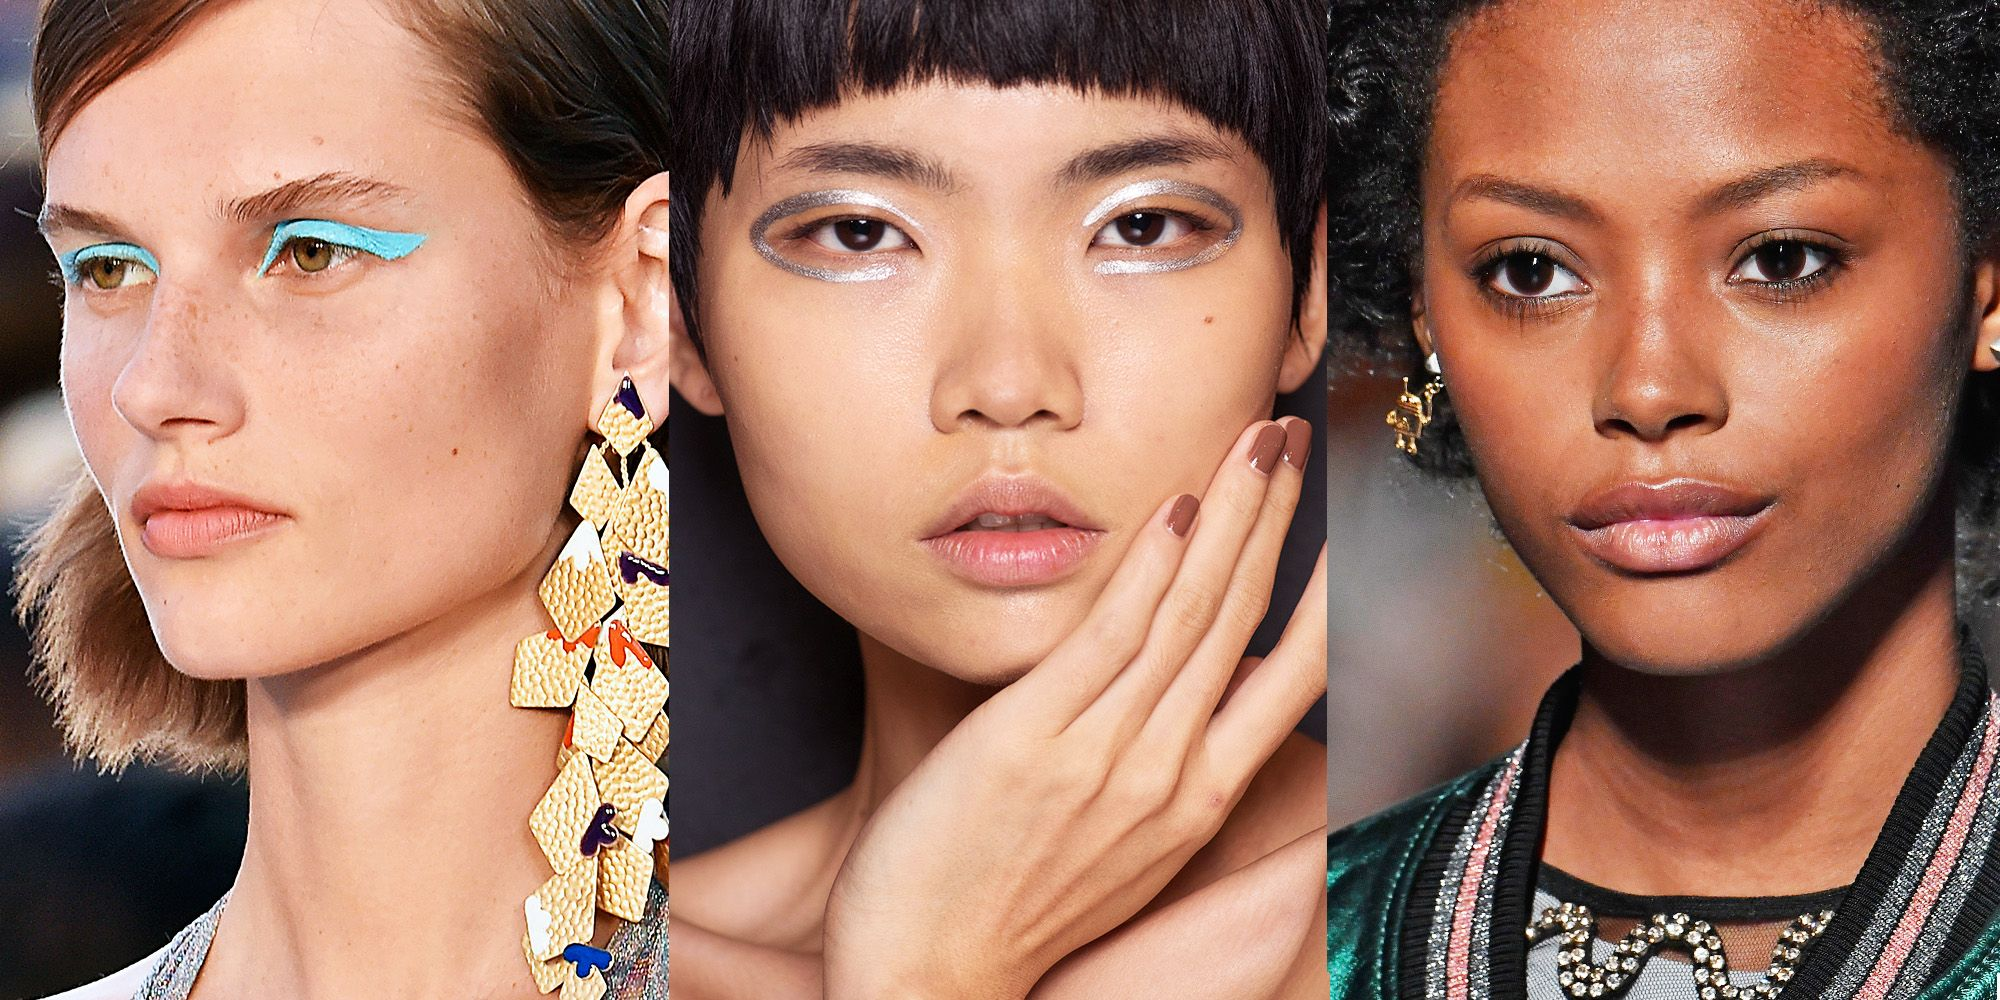 Shake Up Your Summer With These New Makeup Trends